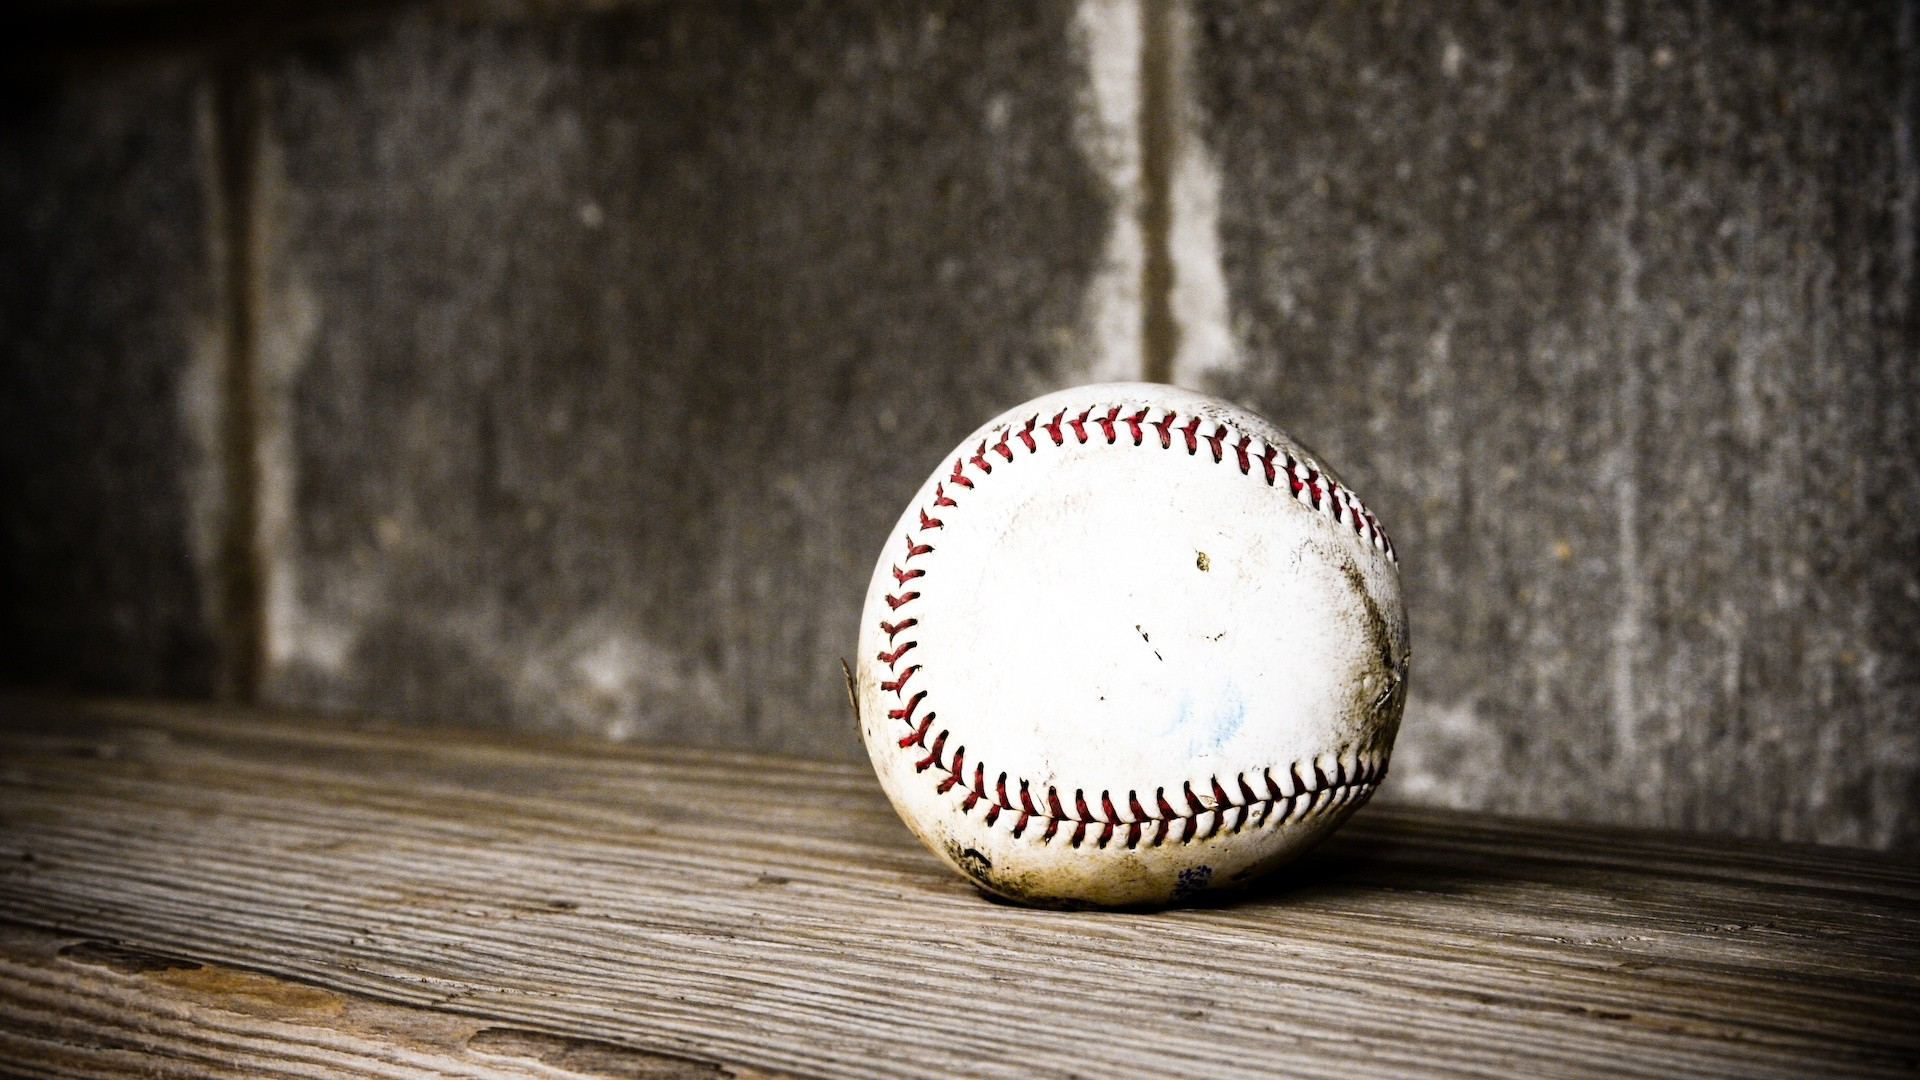 Sports Wallpaper For Android Free Download: 38+ Softball Backgrounds ·① Download Free HD Backgrounds